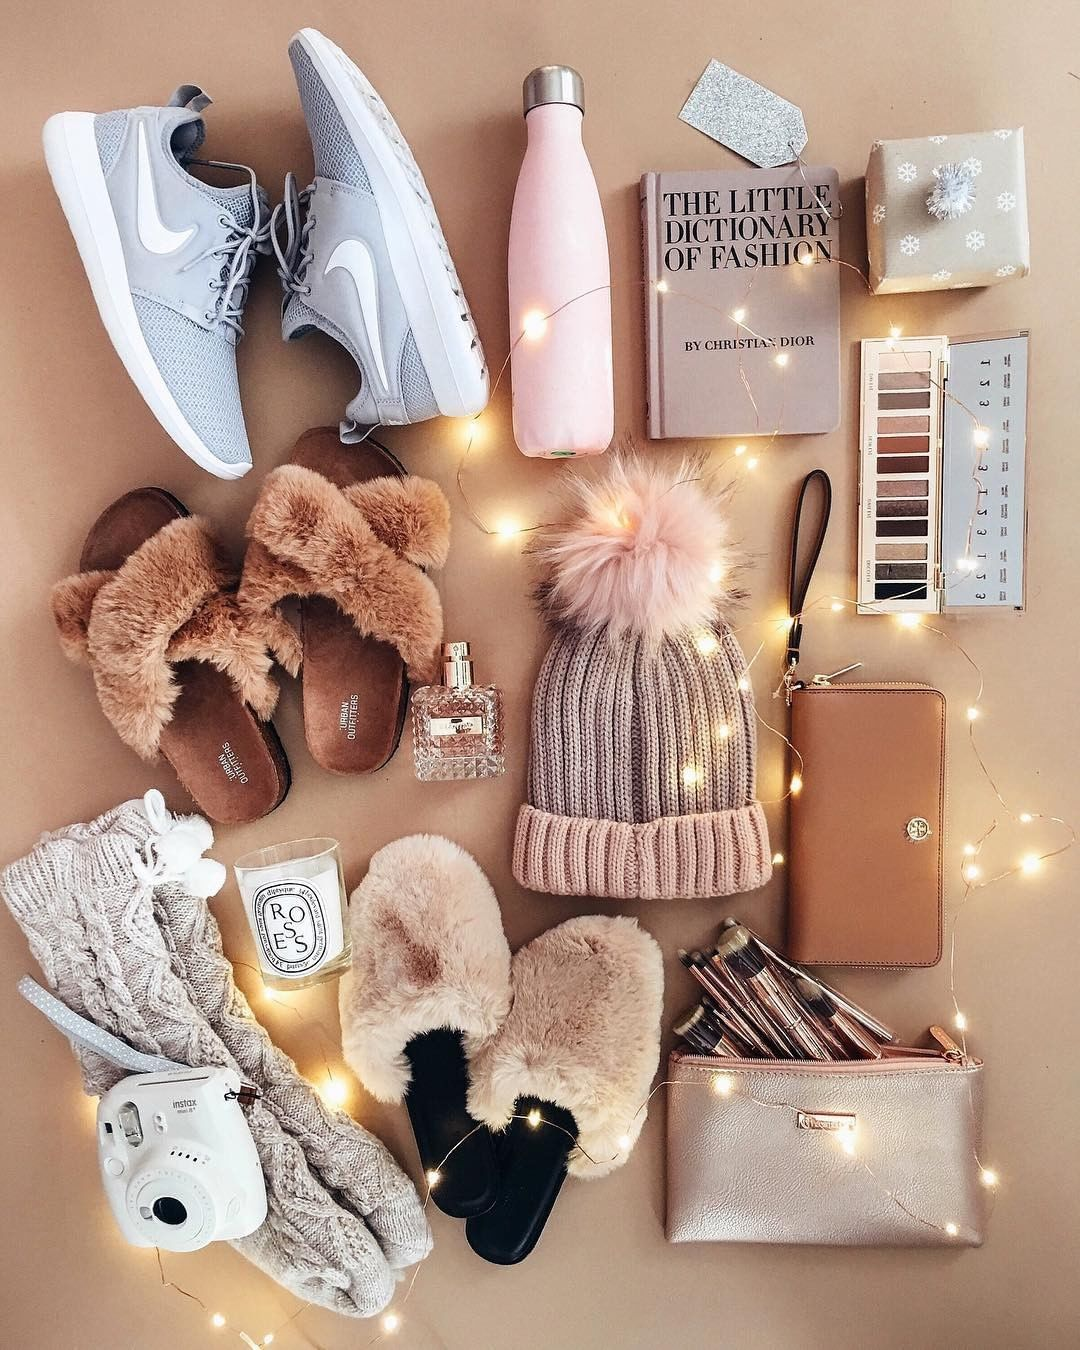 "LIKEtoKNOW.it on Instagram: ""Add some sparkle to your #LTKholidaywishlist with @jessi_afshin's seasonal must-haves and download the LIKEtoKNOW.it app to instantly…"" 1"